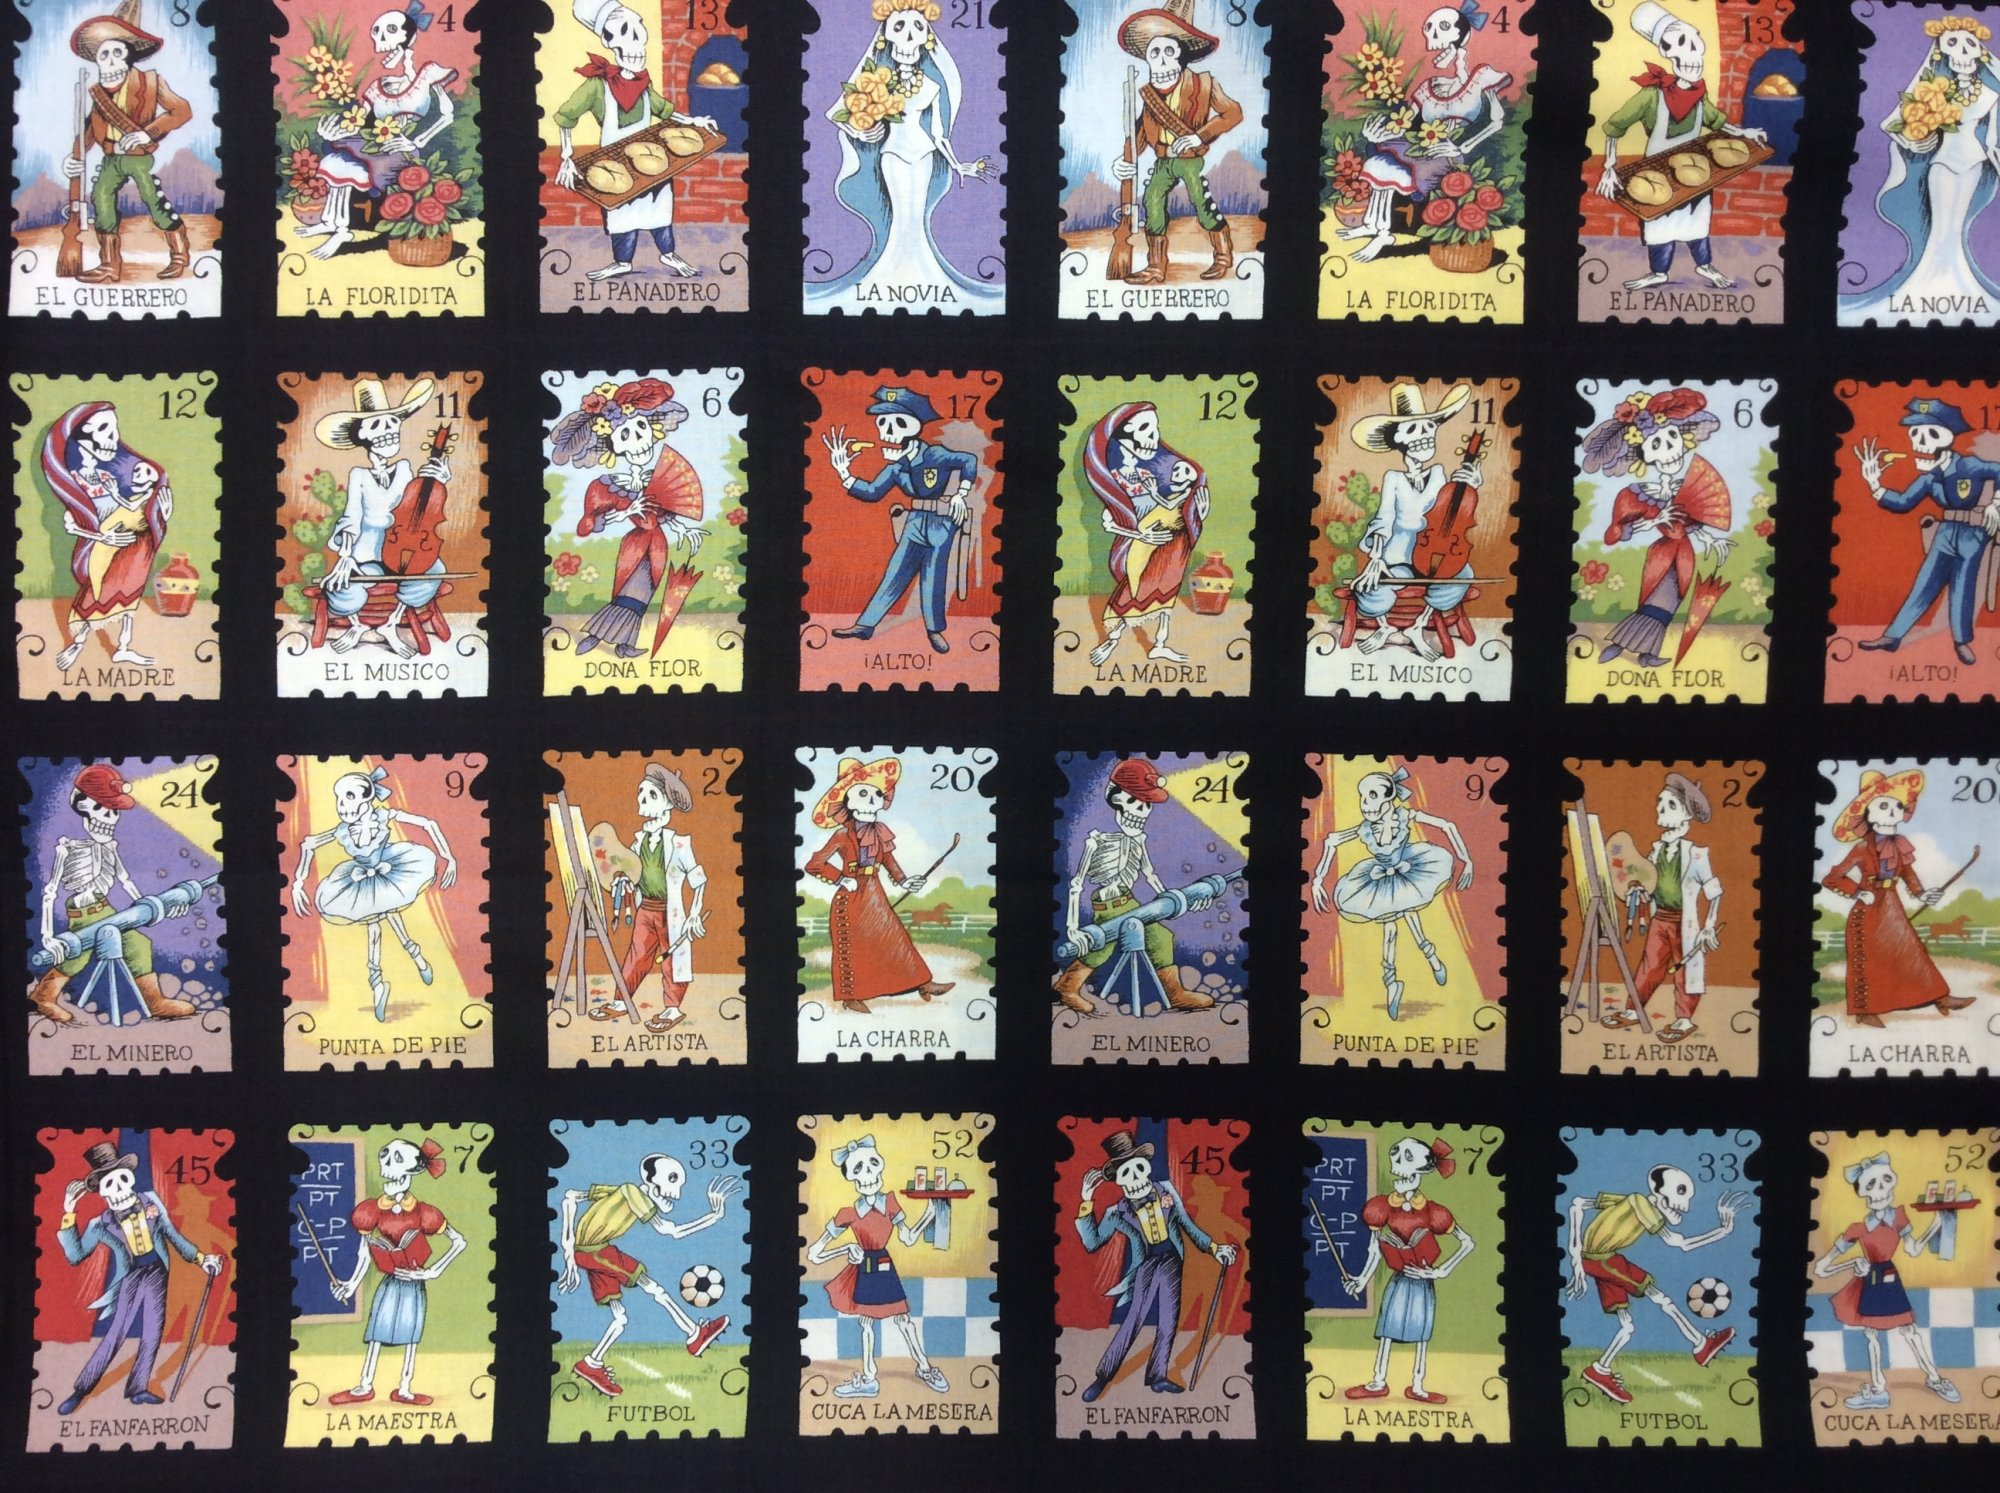 Cartas Marcadas BTY Mexico Lotteria Alexander Henry Lottery Cards Dia de los Muertos Cotton Quilt Fabric Black Background AH228